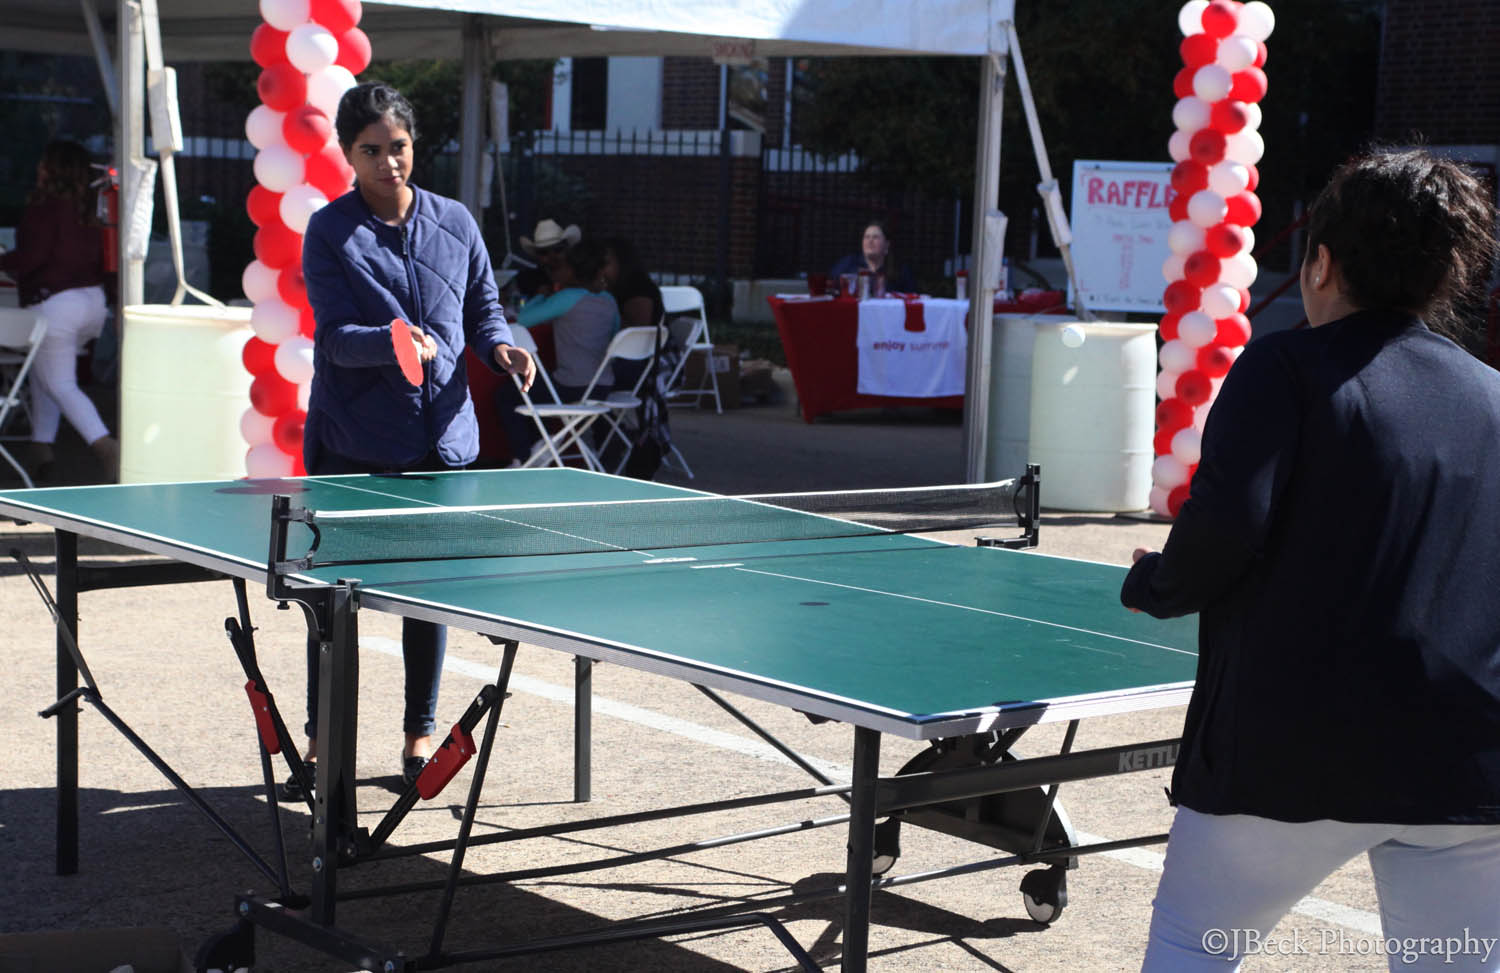 Rent a ping pong table for a company party!